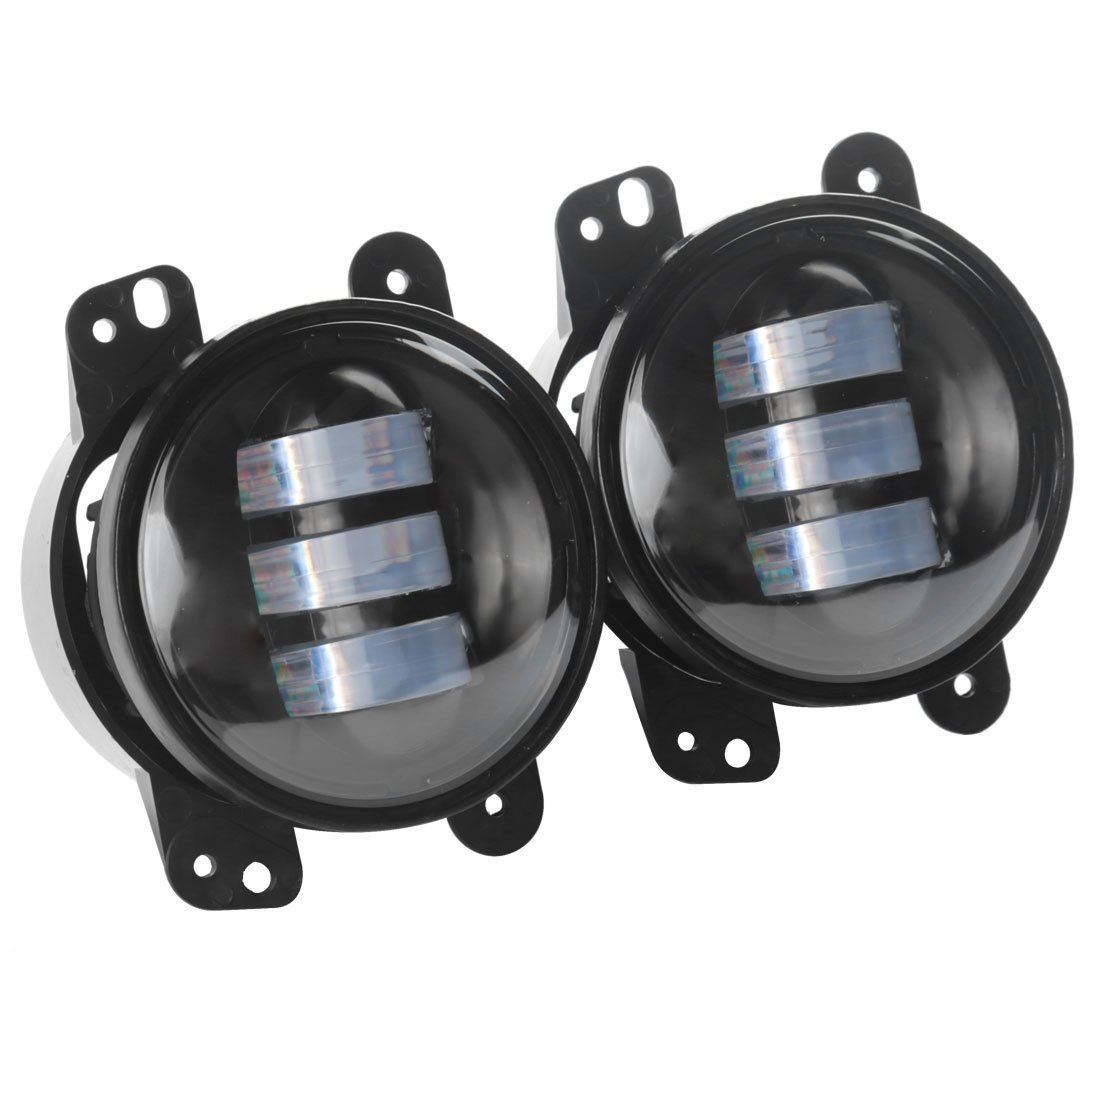 Amazoncom 4 Led Fog Lights for Jeep Wrangler JK Led Fog Lamps